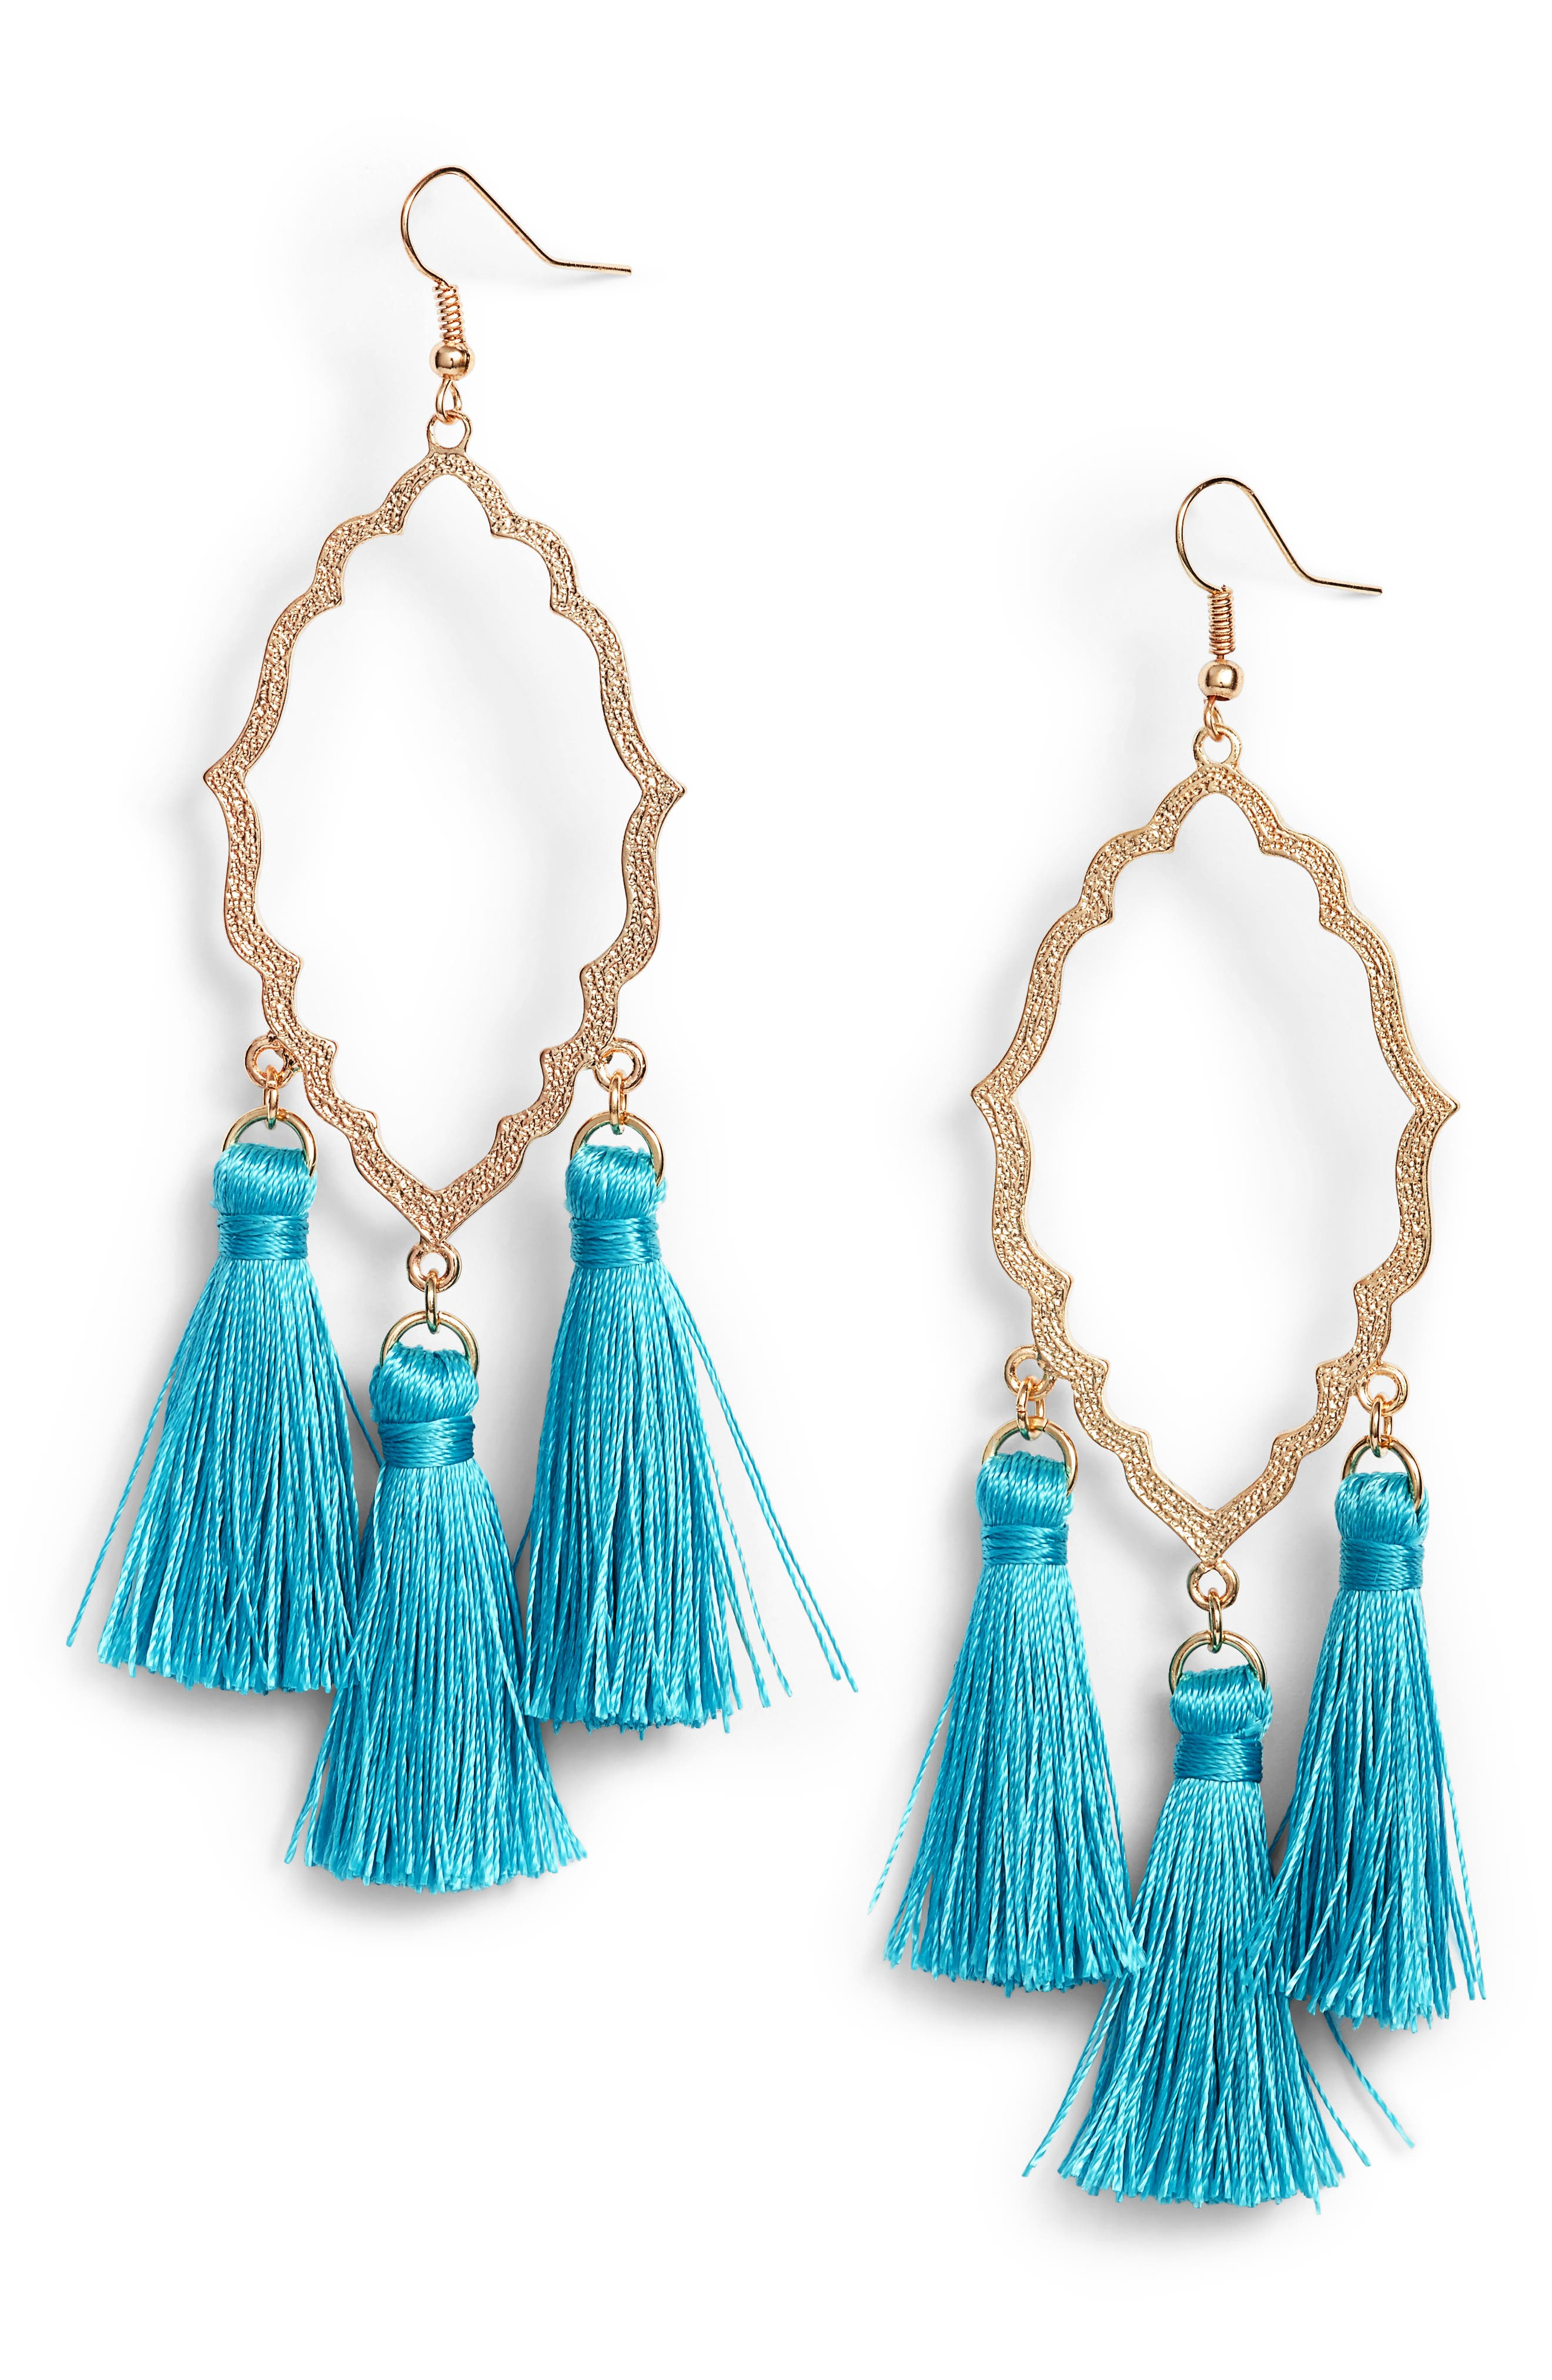 Medallion Tassel Earrings,                             Main thumbnail 1, color,                             Teal